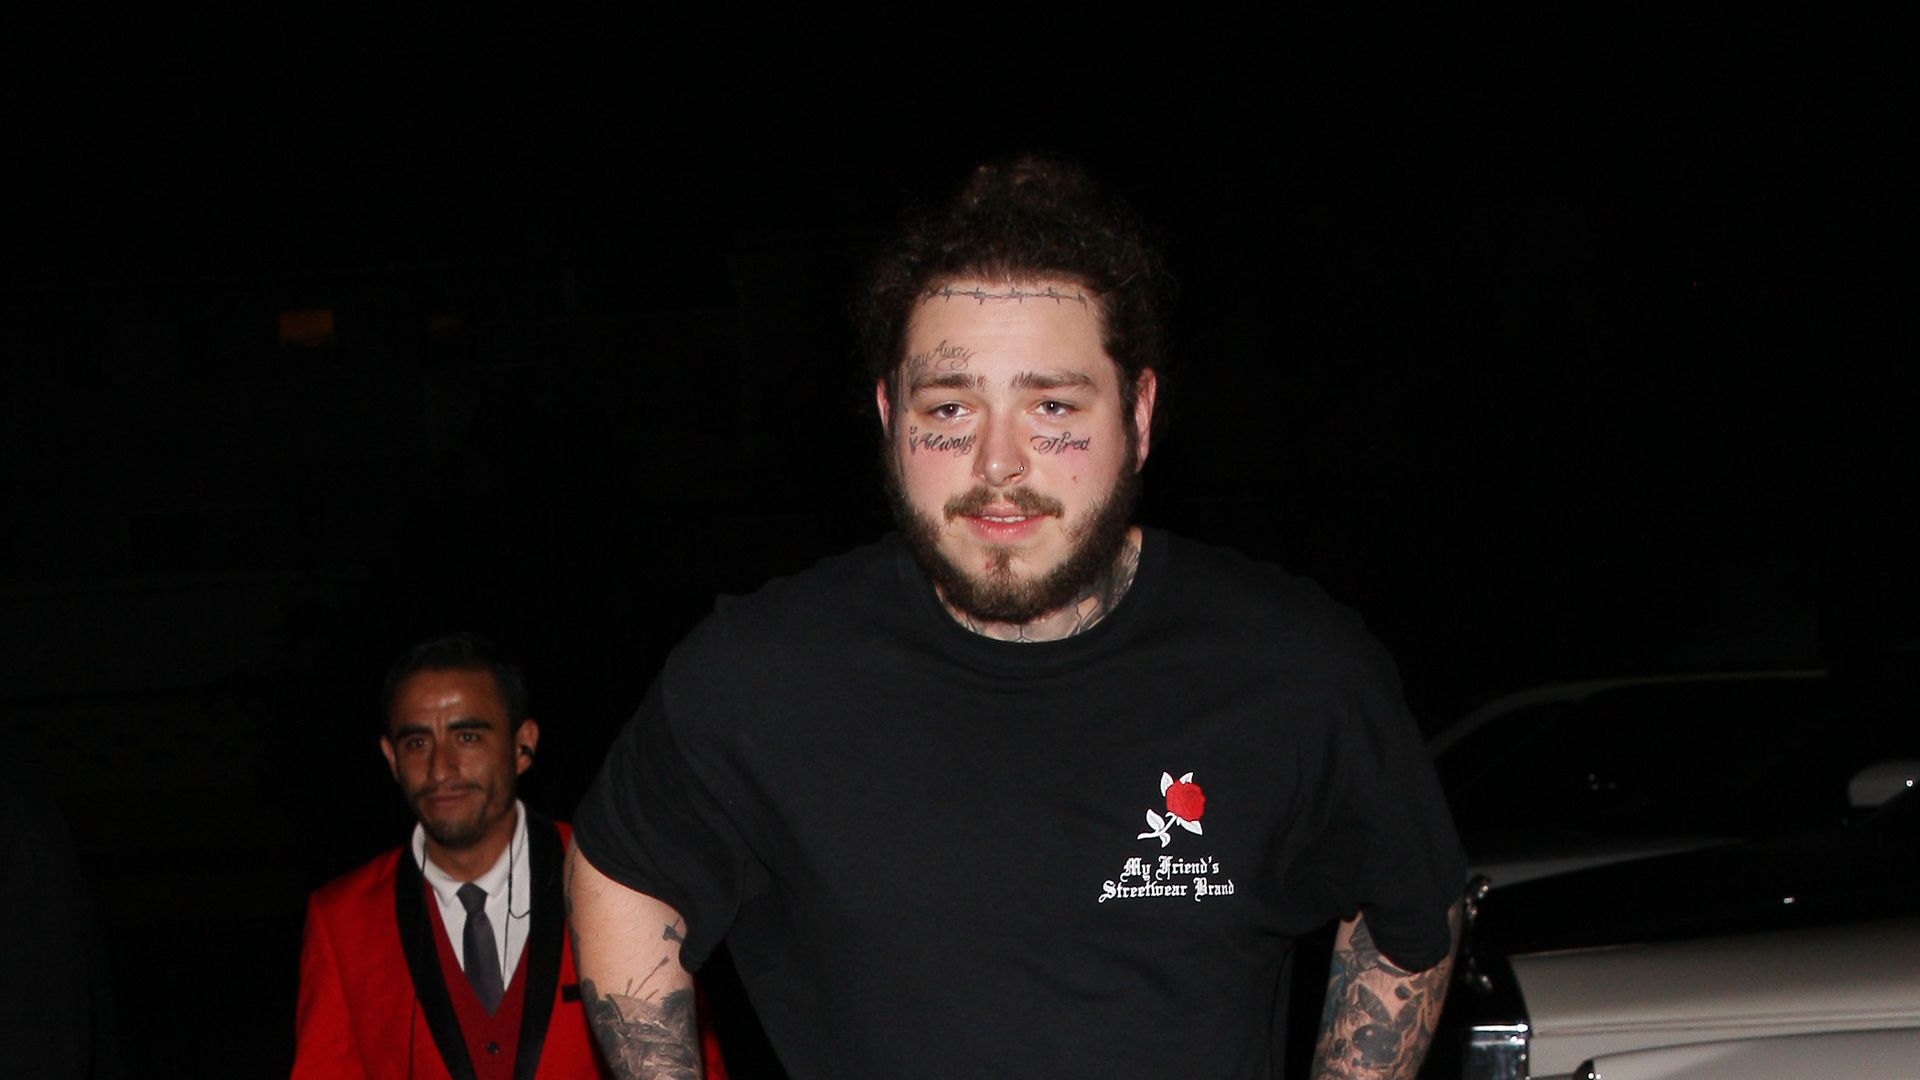 After Vmas 2018 Rapper Post Malone Crashed With Jet Almost